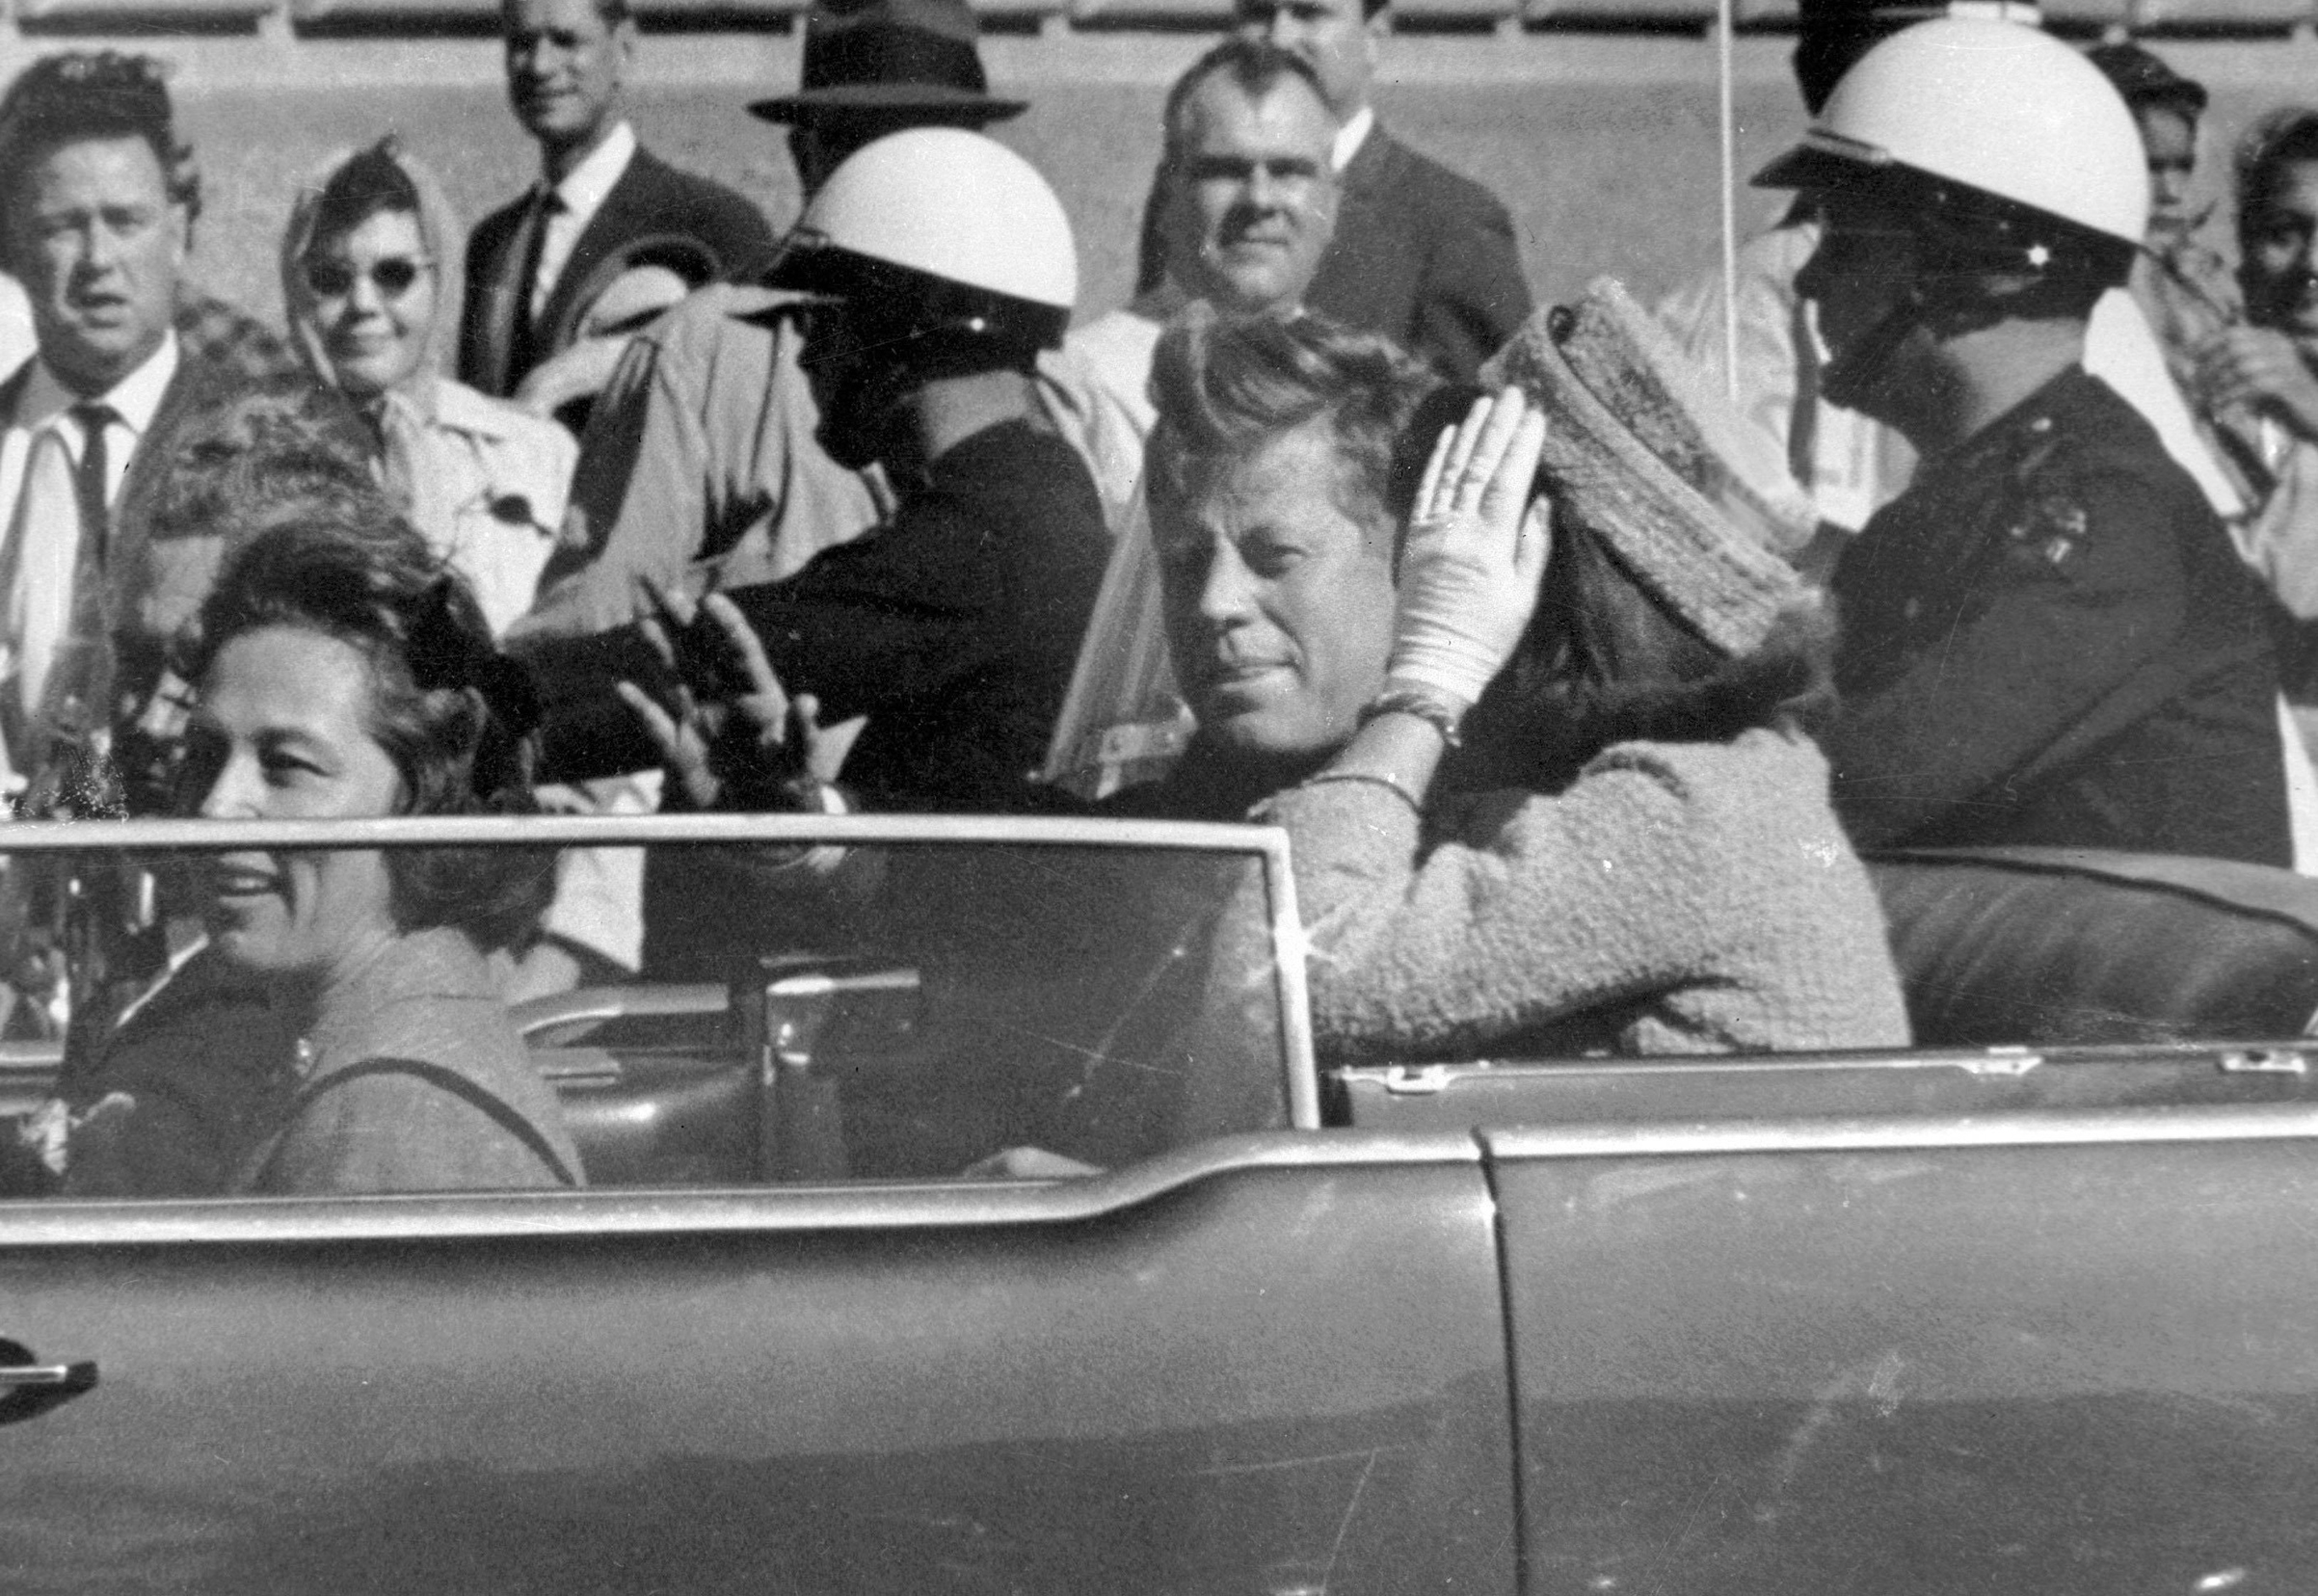 President John F. Kennedy waves from his car in a motorcade in Dallas on Nov. 22, 1963.